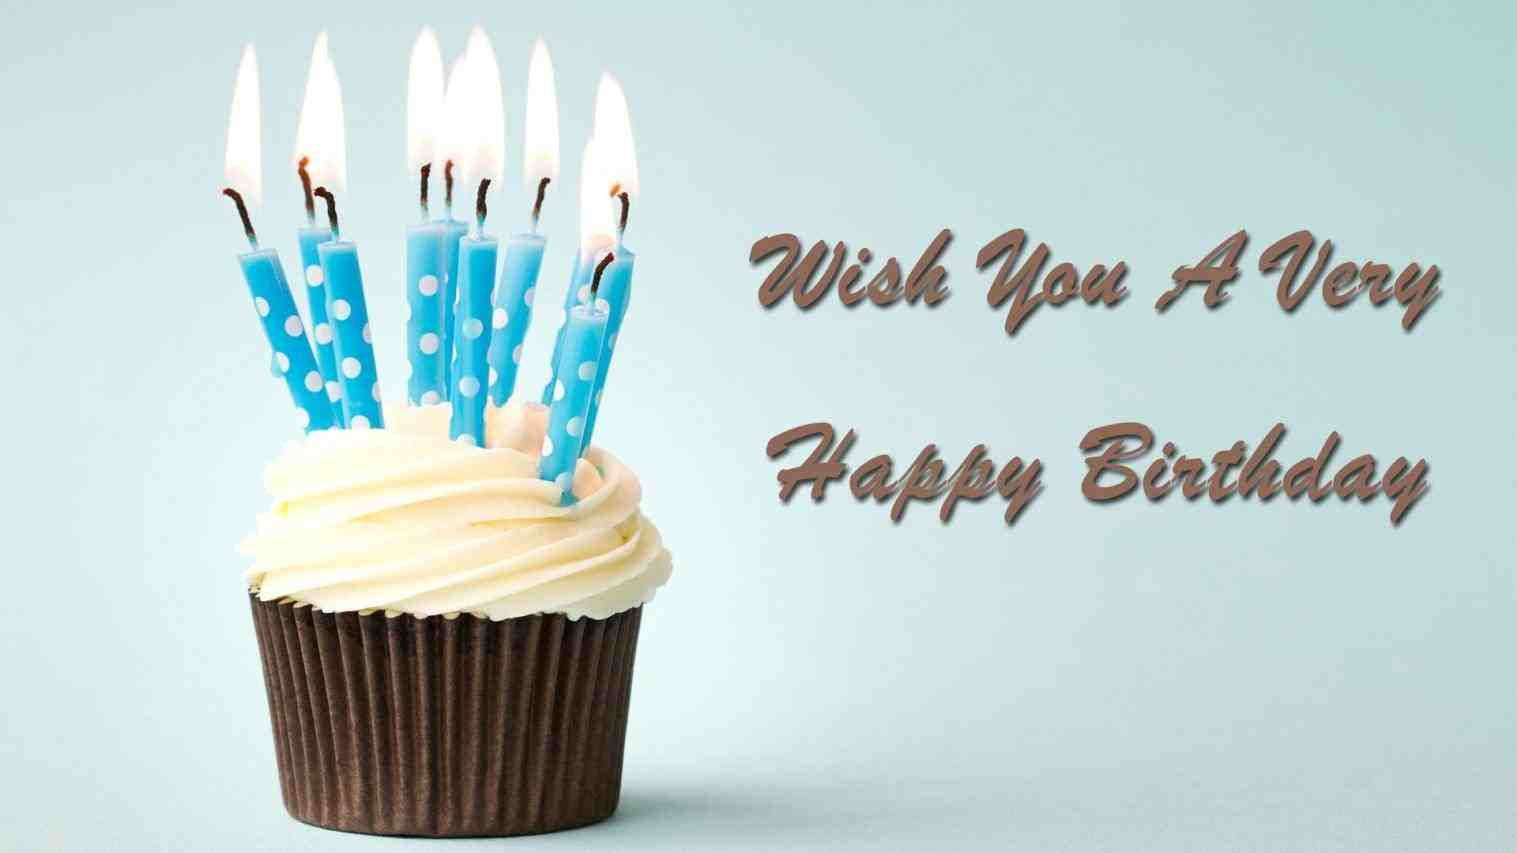 Birthday Cakes Download Free Happy Birthday Wishes Hd Images For